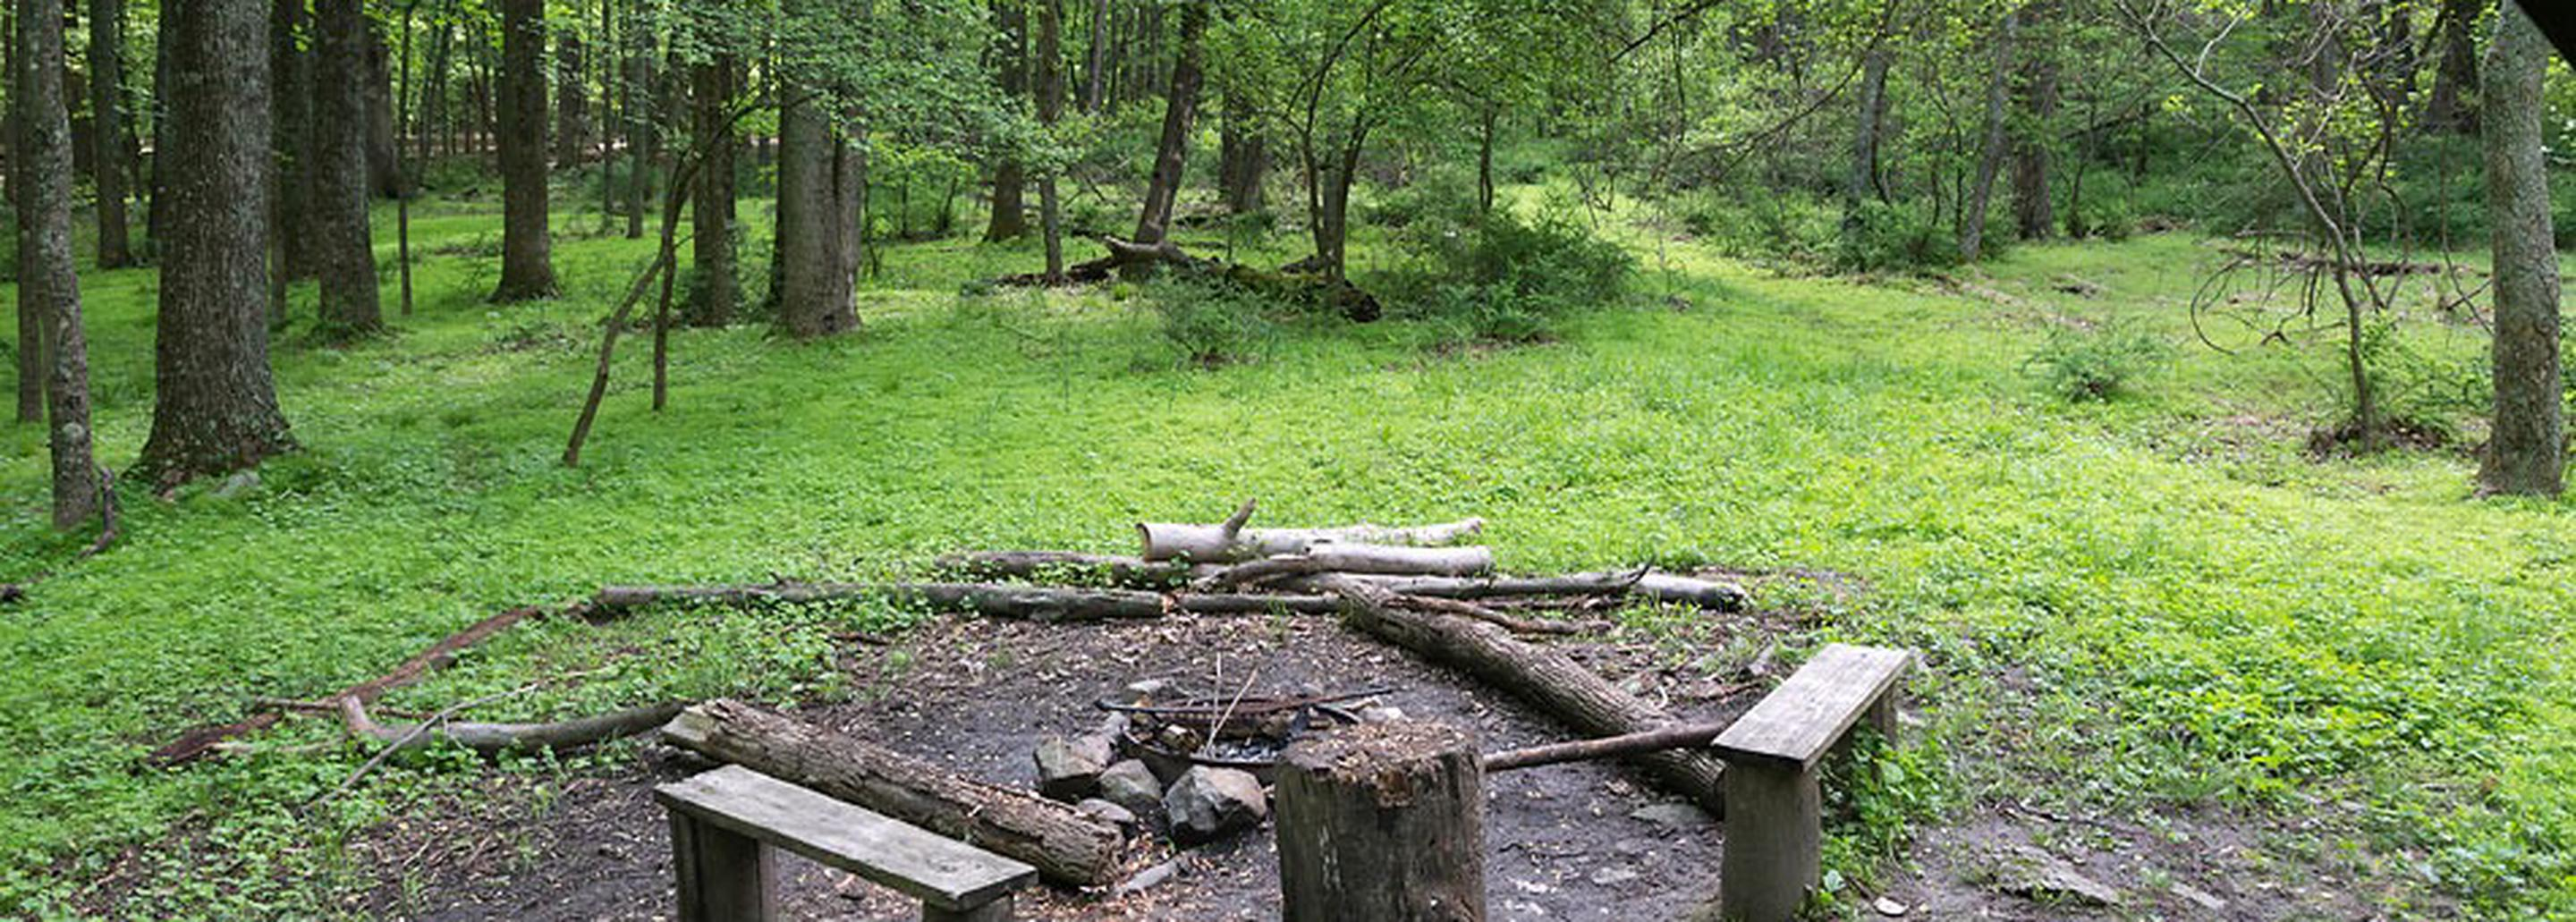 A campfire circle with wooden benches and logs around it, with tree in the backgroundAdirondack shelter view